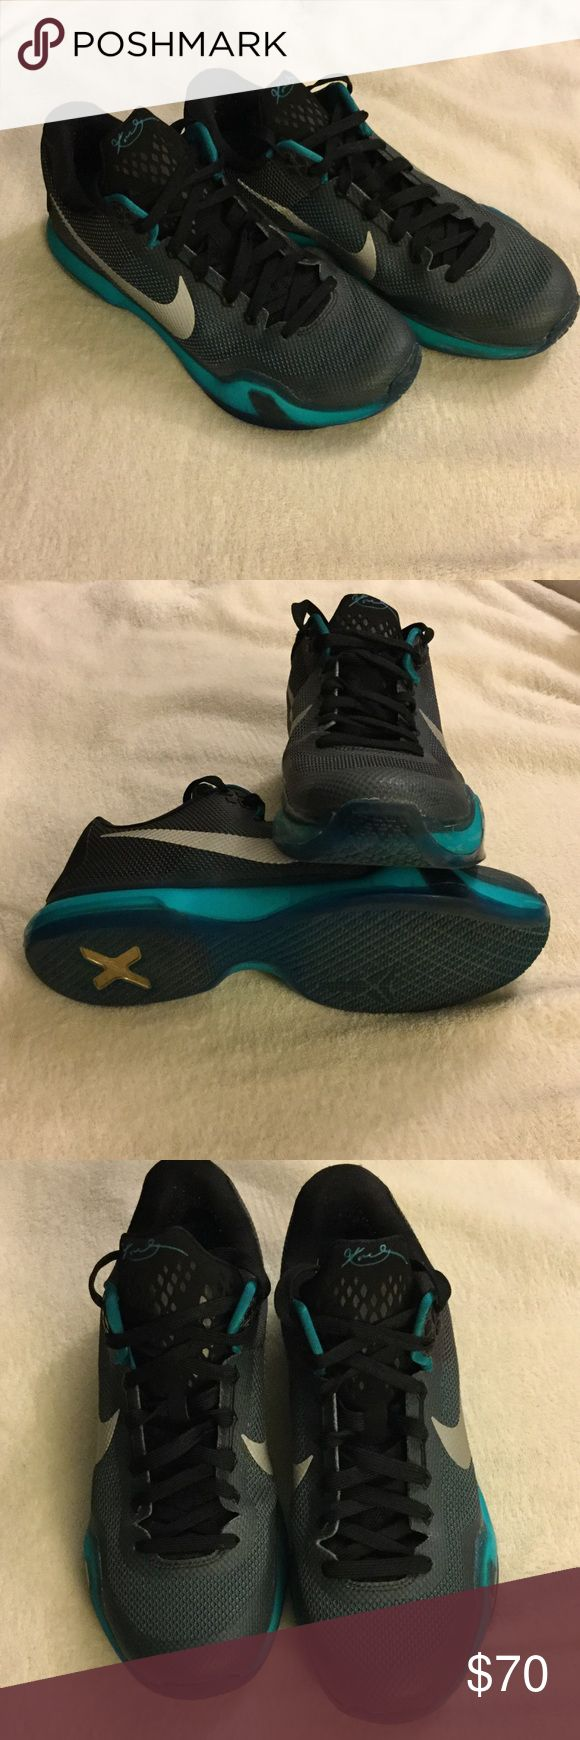 Kobe X Nike men's basketball shoes Kobe X Nike basketball shoes only on court a couple times. Nike Shoes Athletic Shoes